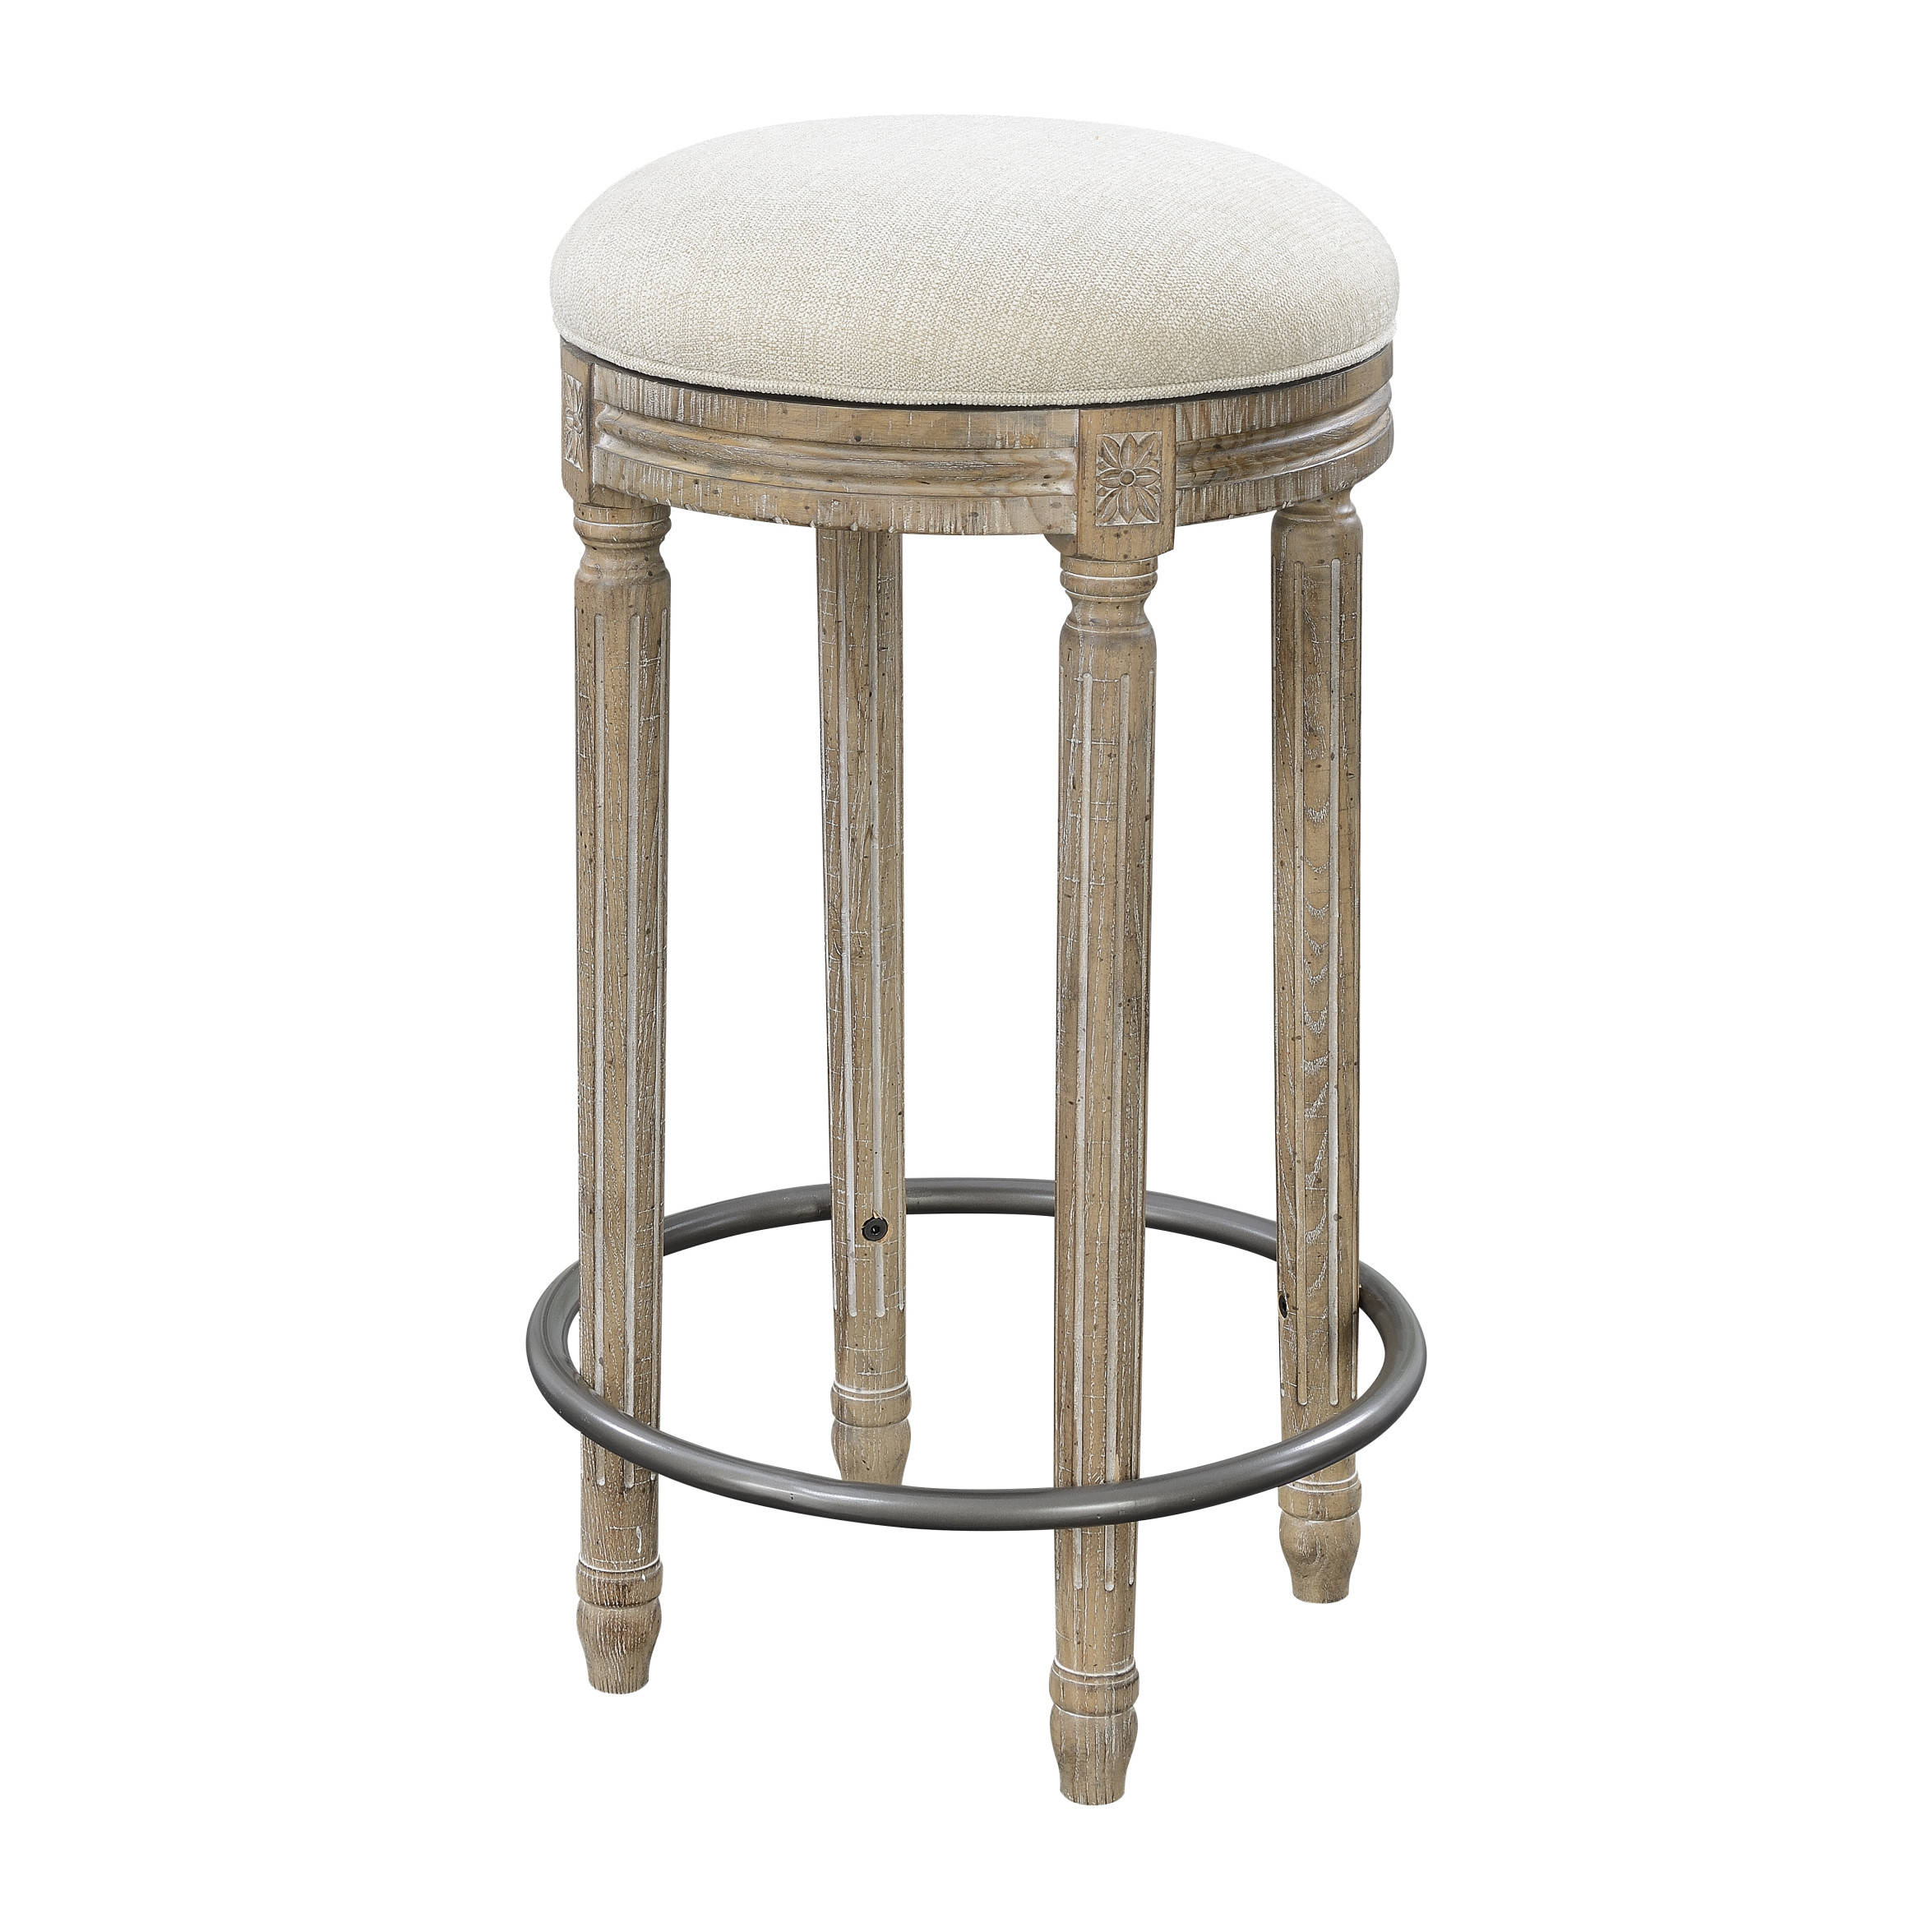 Emerald Home Interlude Cream Round 30 Inch Bar Stool The Classy Home